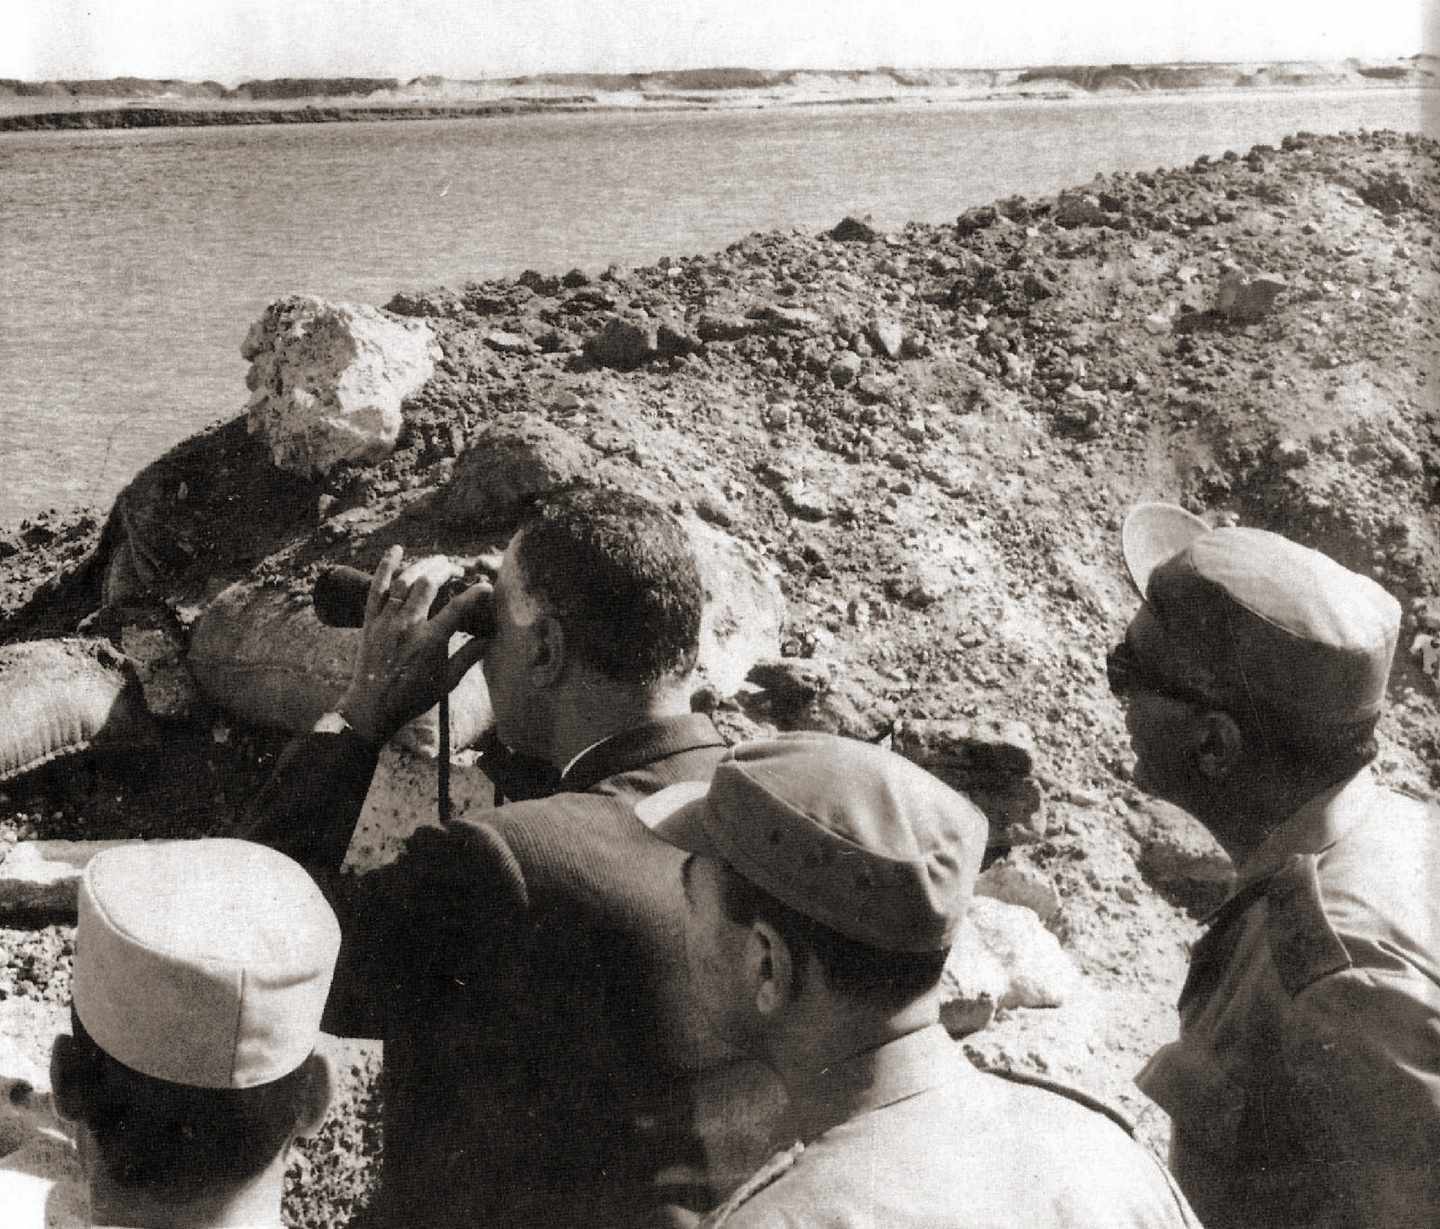 A man wearing suit peering out across a body of water with binoculars from an opening in dirt mound. Behind him are three men in military uniform